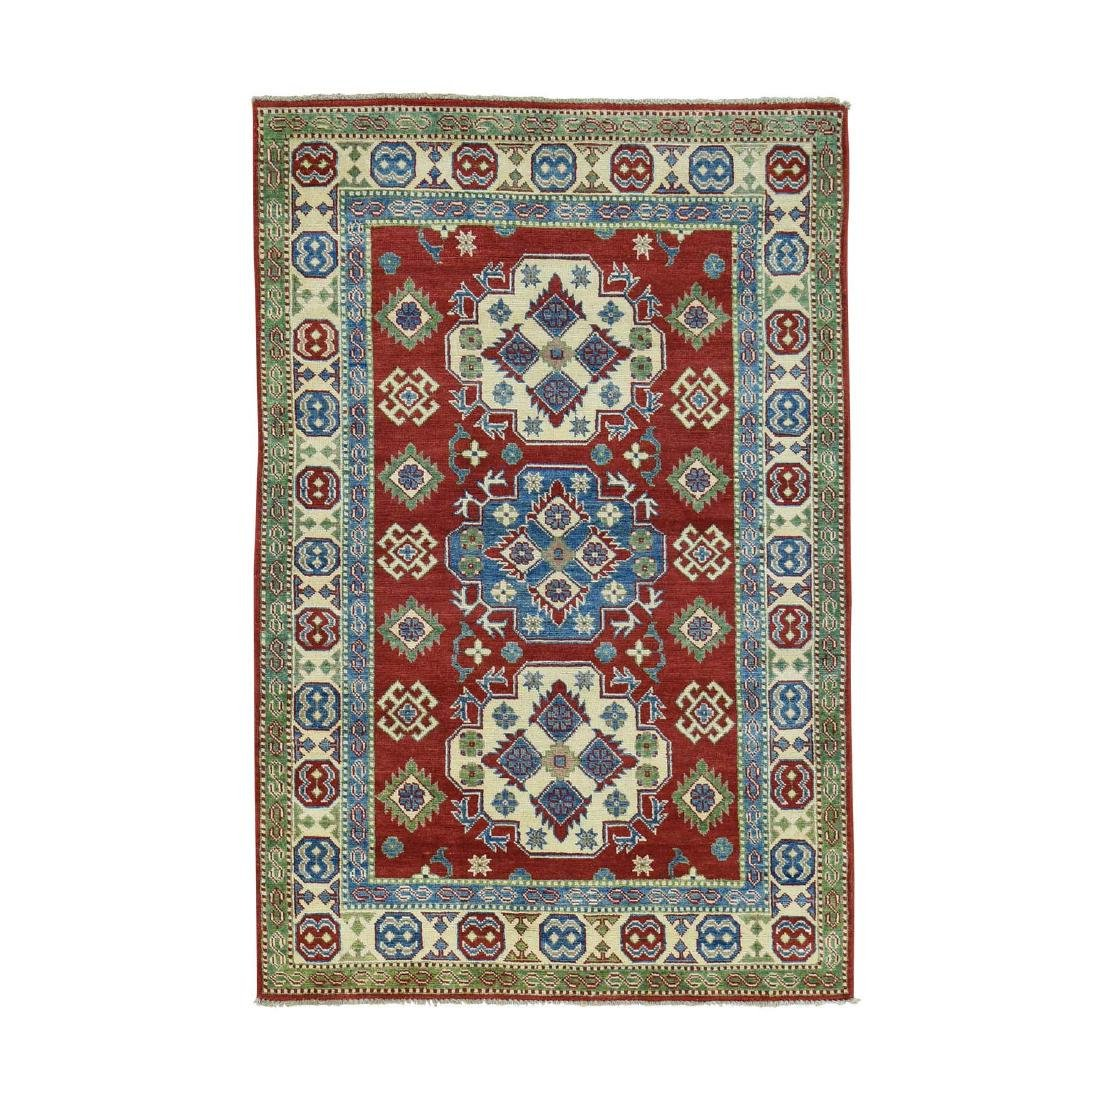 Hand-Knotted Kazak Tribal and Geometric Design Rug 4x6